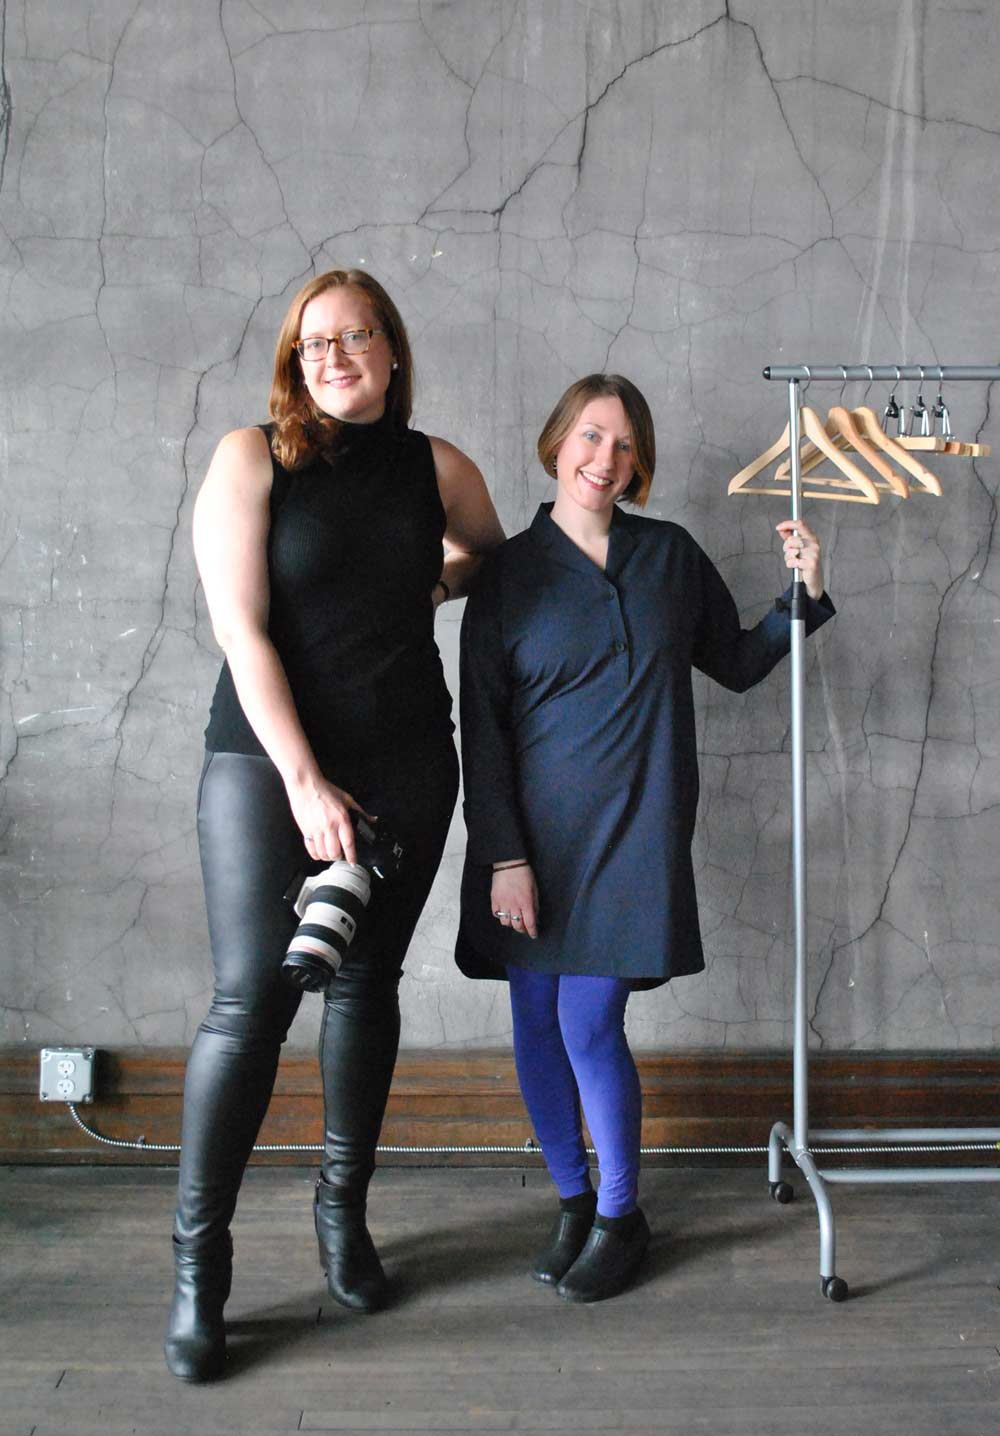 820: Studio Founders Claudia Hershner (left) and Chelsea Cutrell (right).